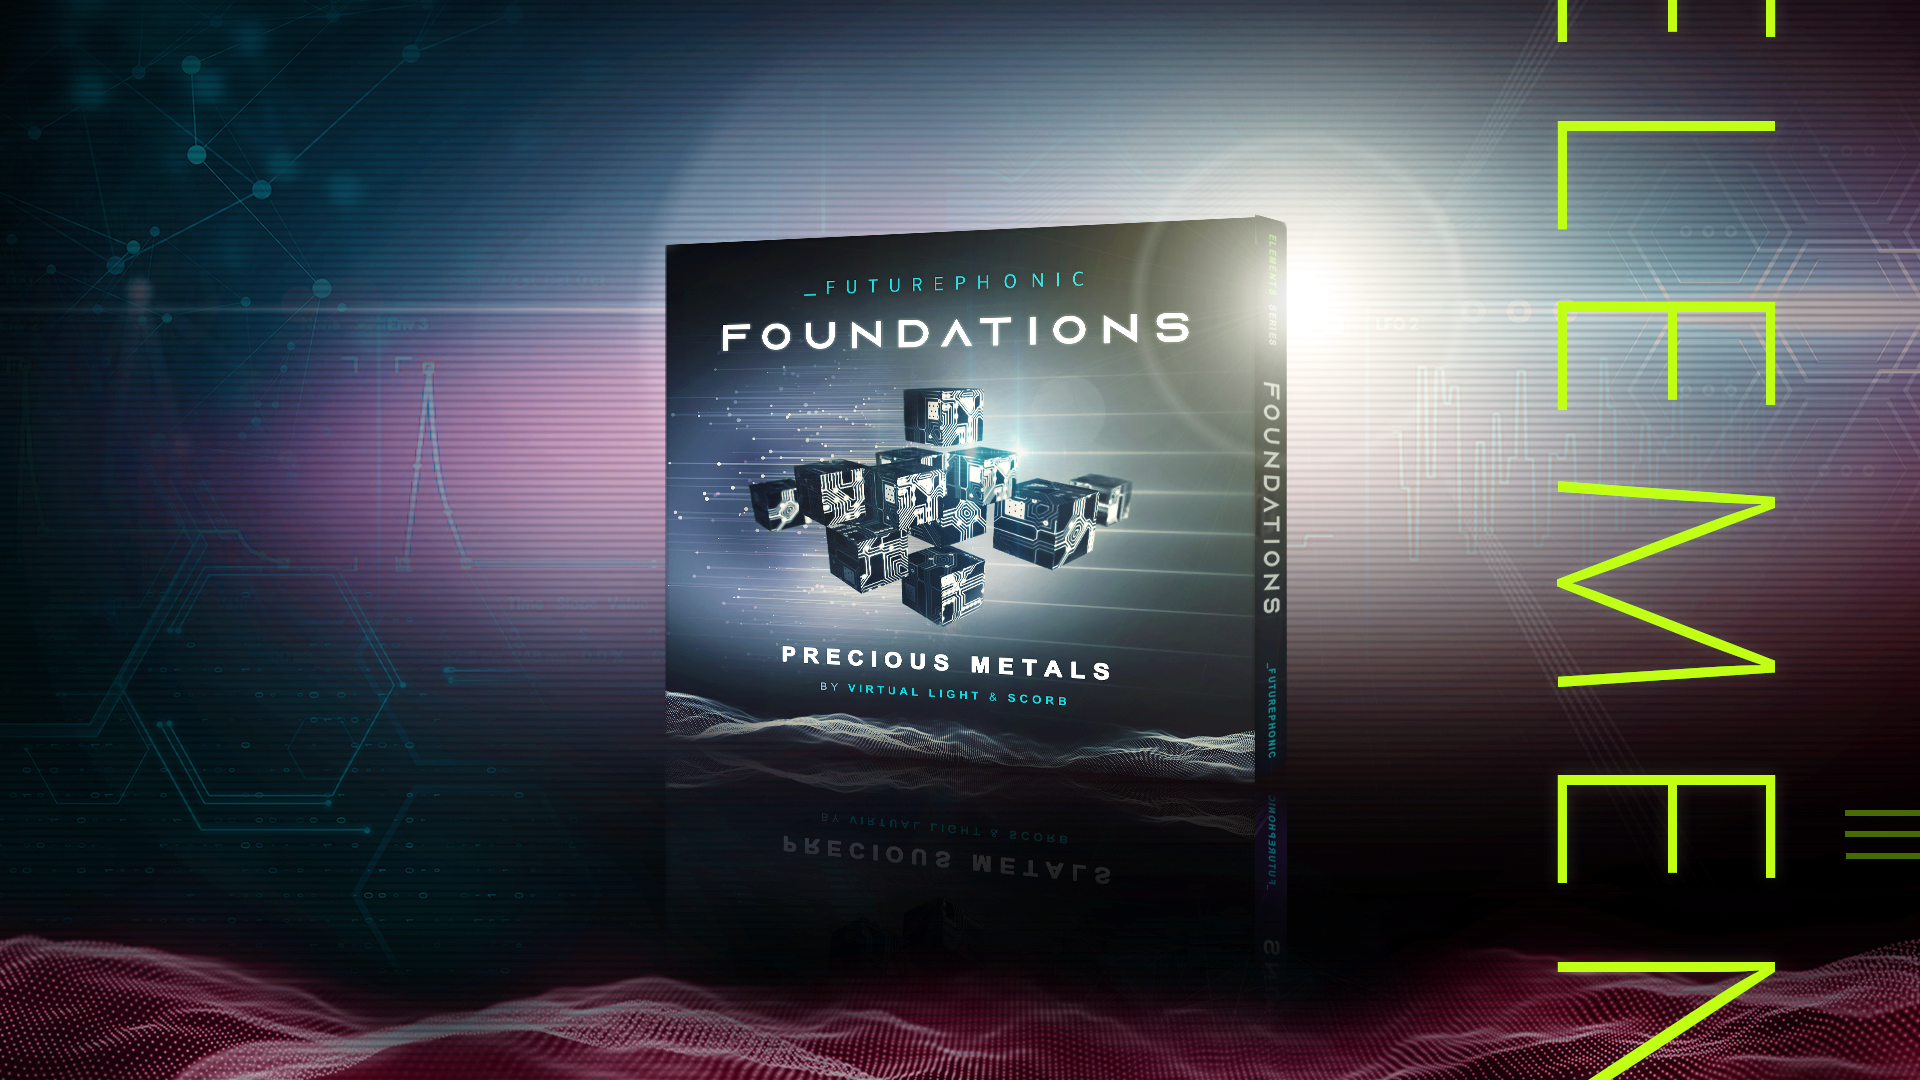 Foundations - Precious Metals by Virtual Light and Scorb